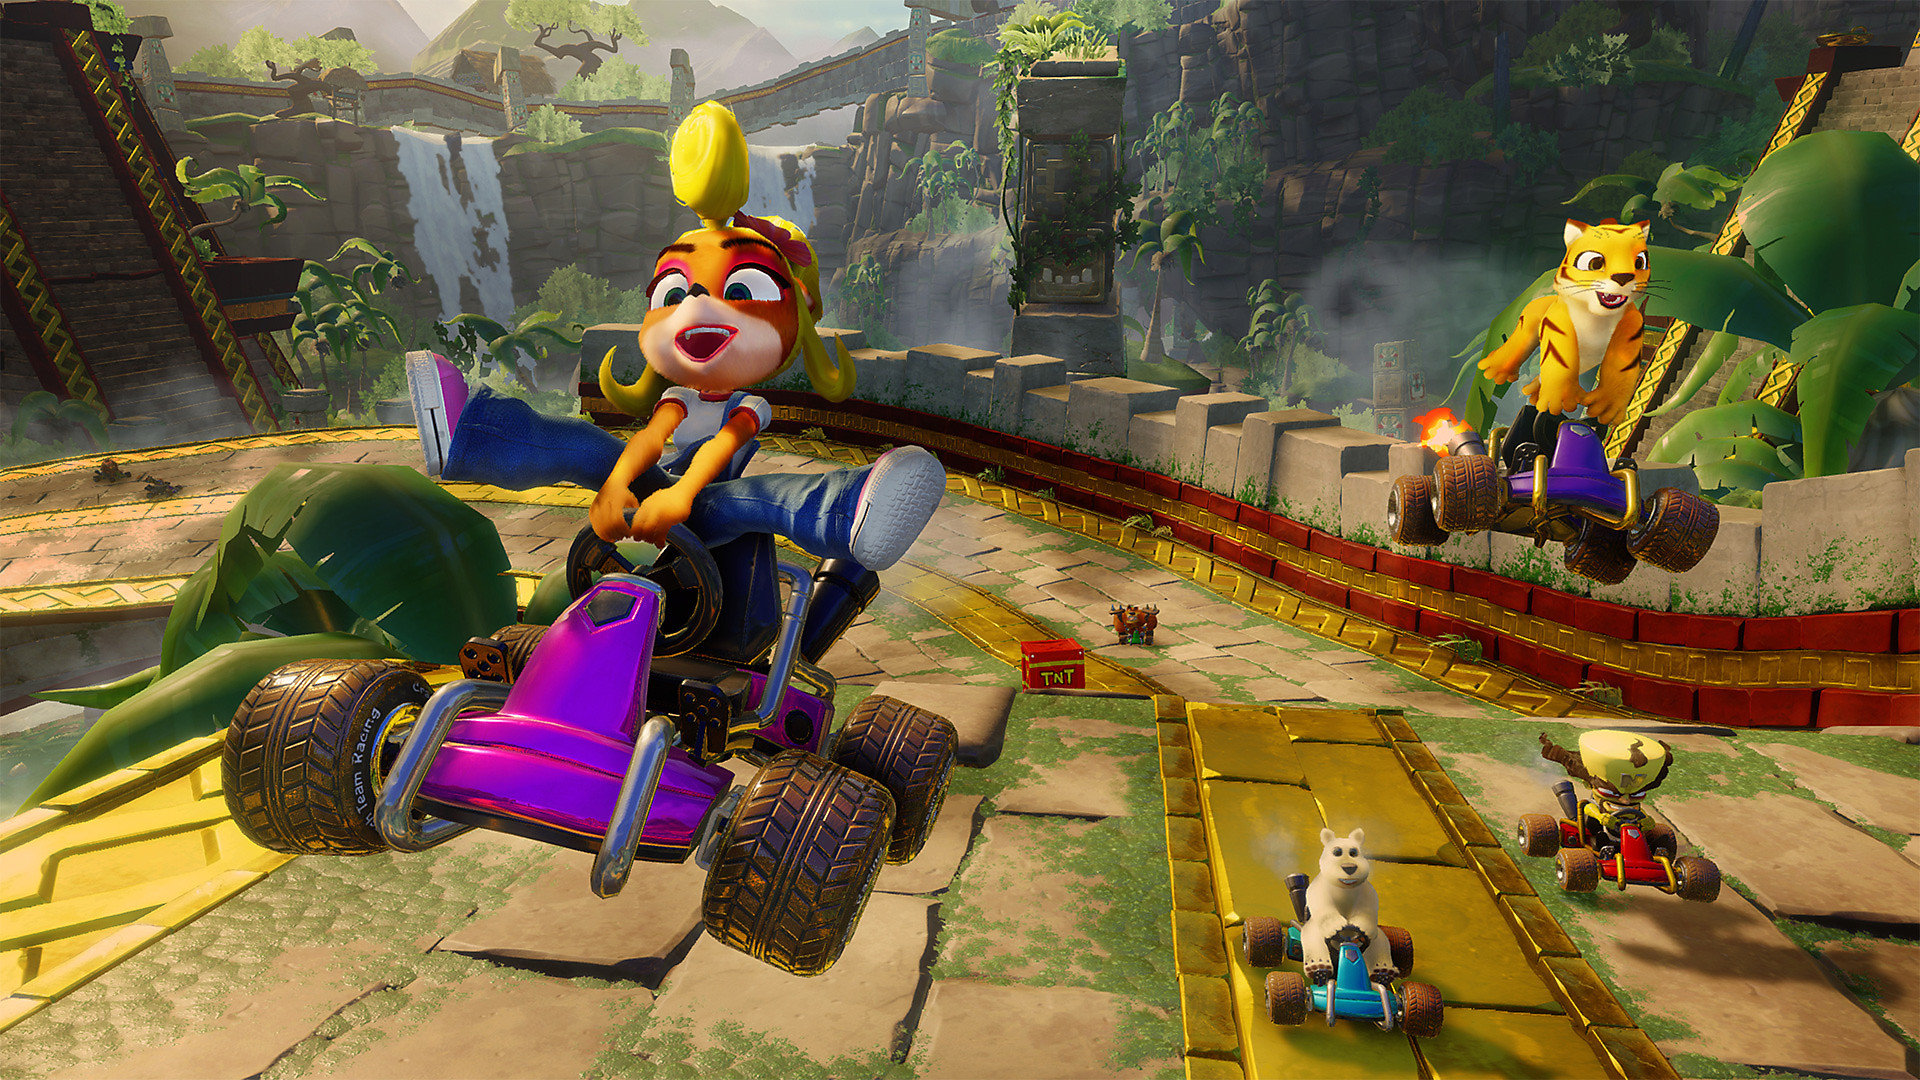 crash-team-racing-nitro-fueled-screen-03-ps4-us-13dec18.jfif